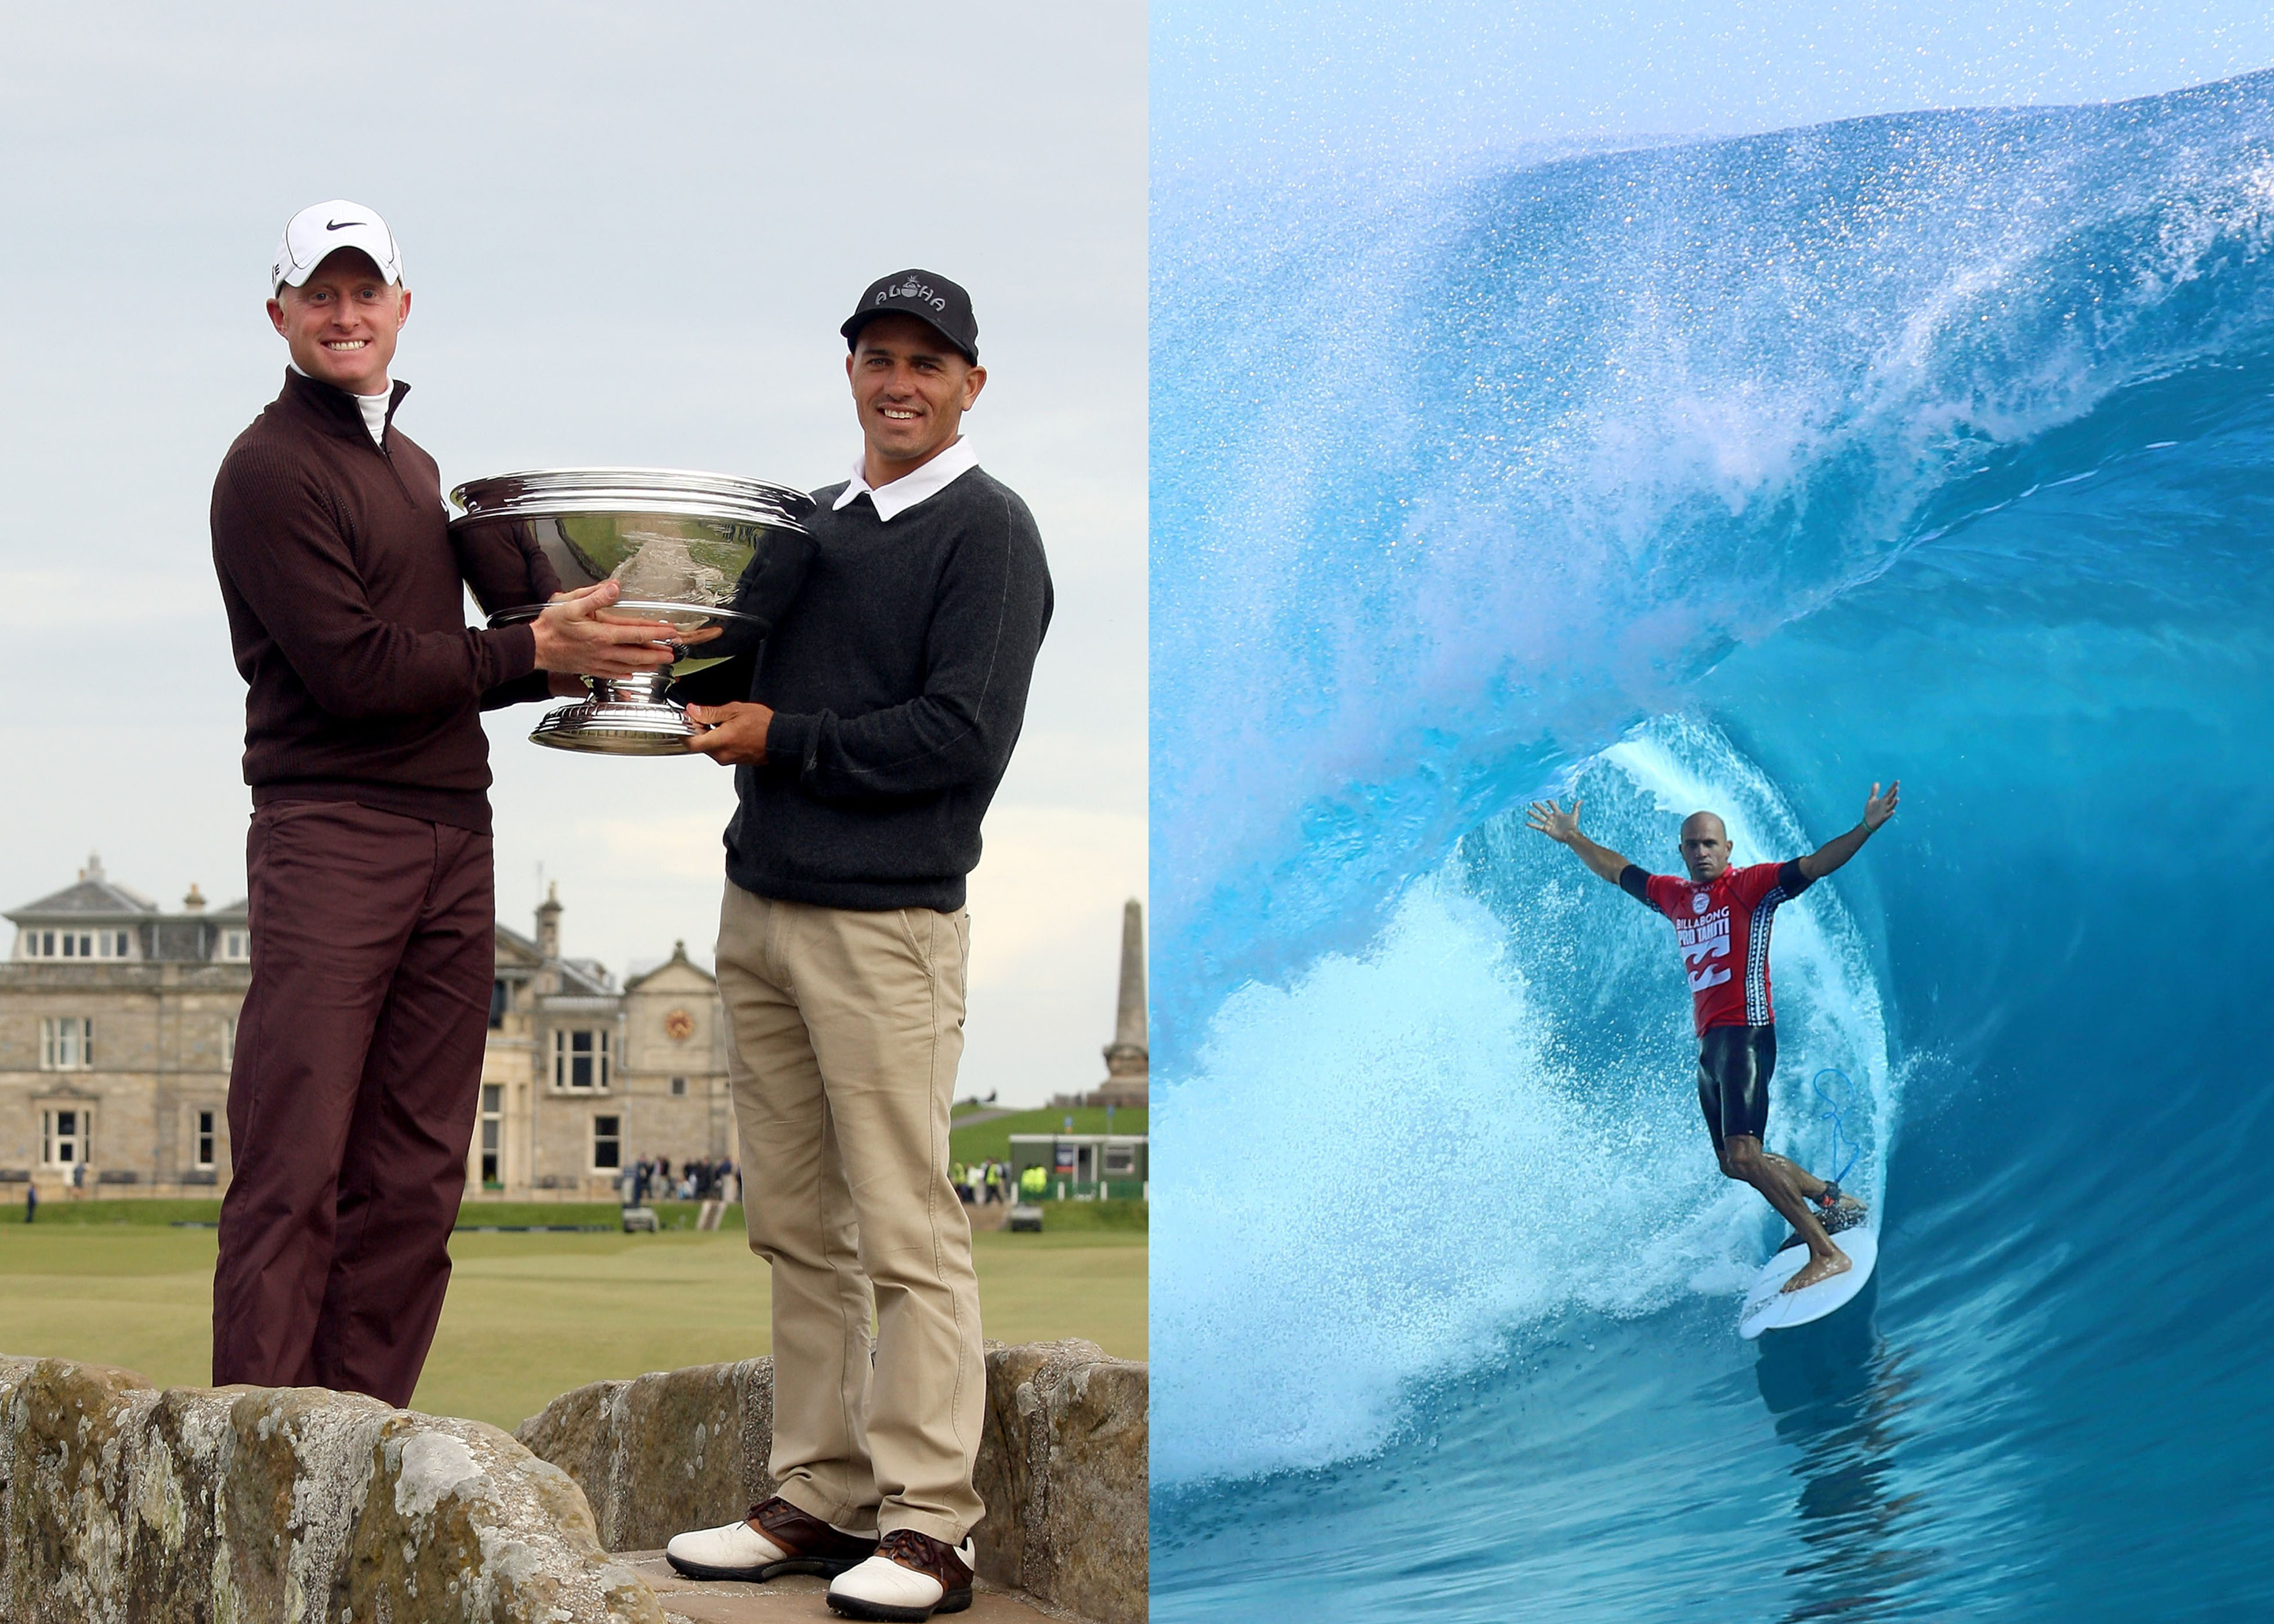 Dyson played with surfing great Kelly Slater in 2009 (Photo: Getty Images)